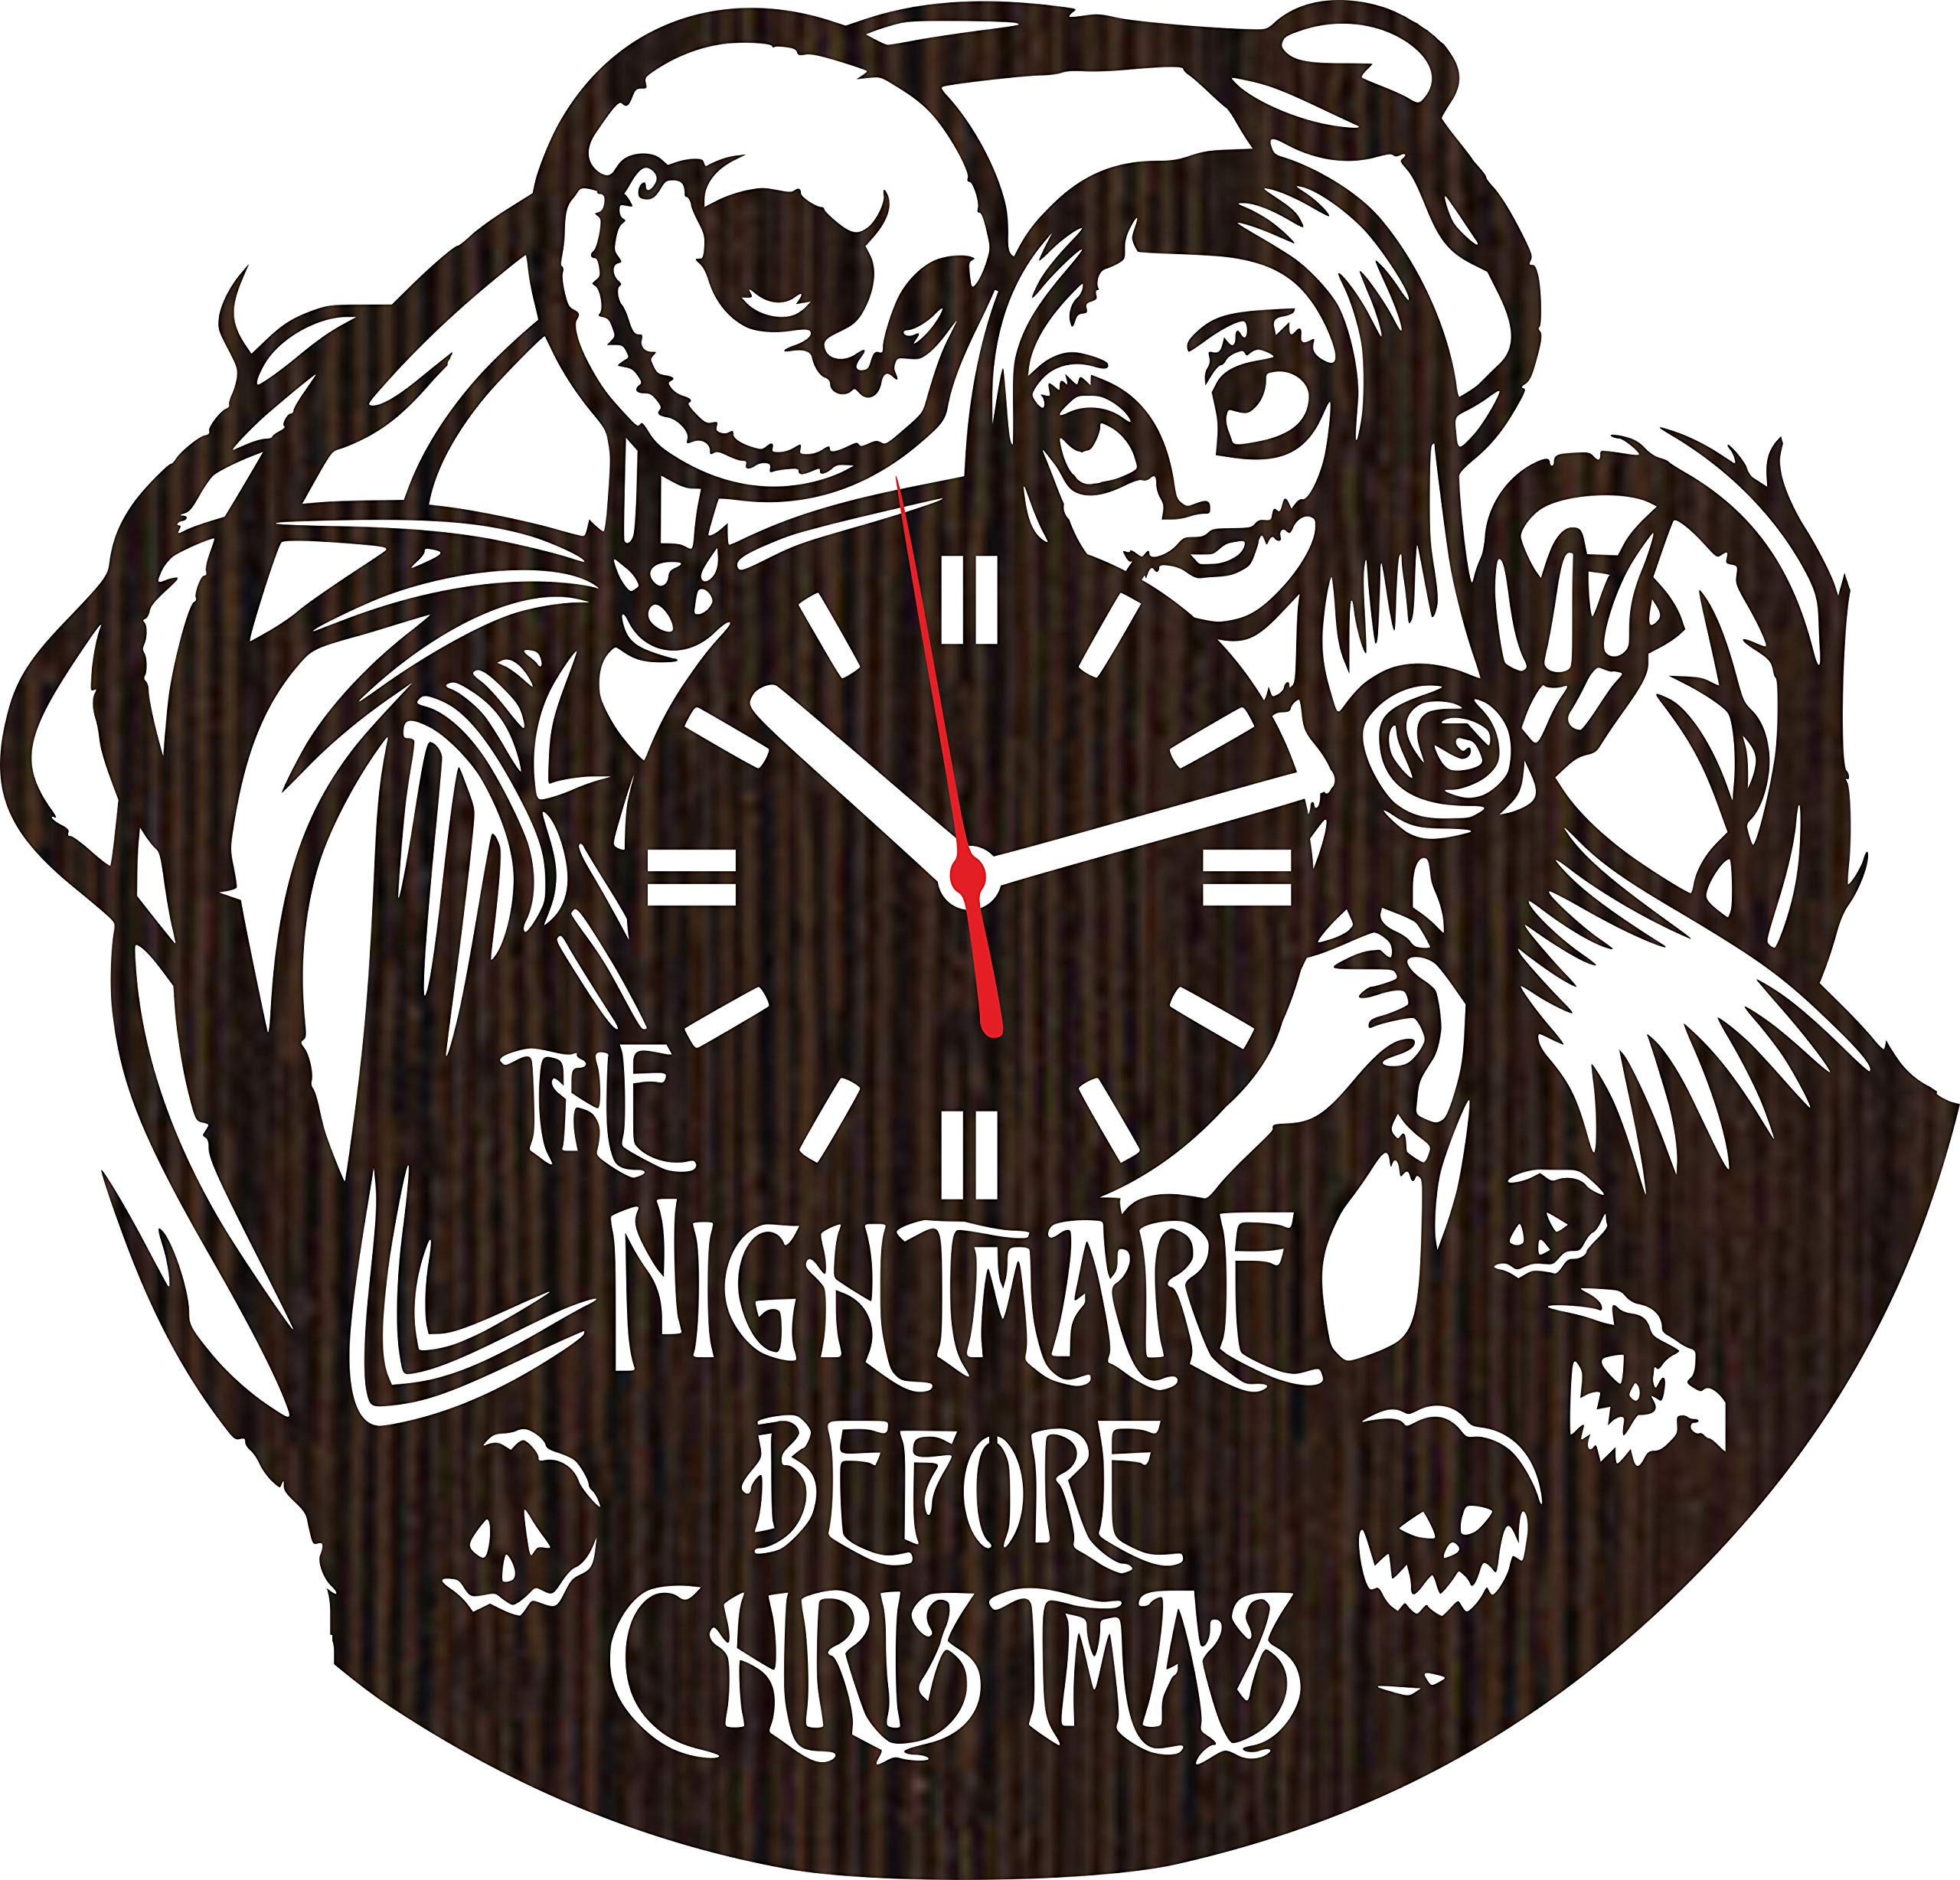 Lovelygift4you Wooden Wall Clock The Nightmare Before for Men Women him her Kids Jack Skellington and Sally Simply Meant to be Wedding Home Decor Tim Burton Movie Disney Toys Accessories Vinyl